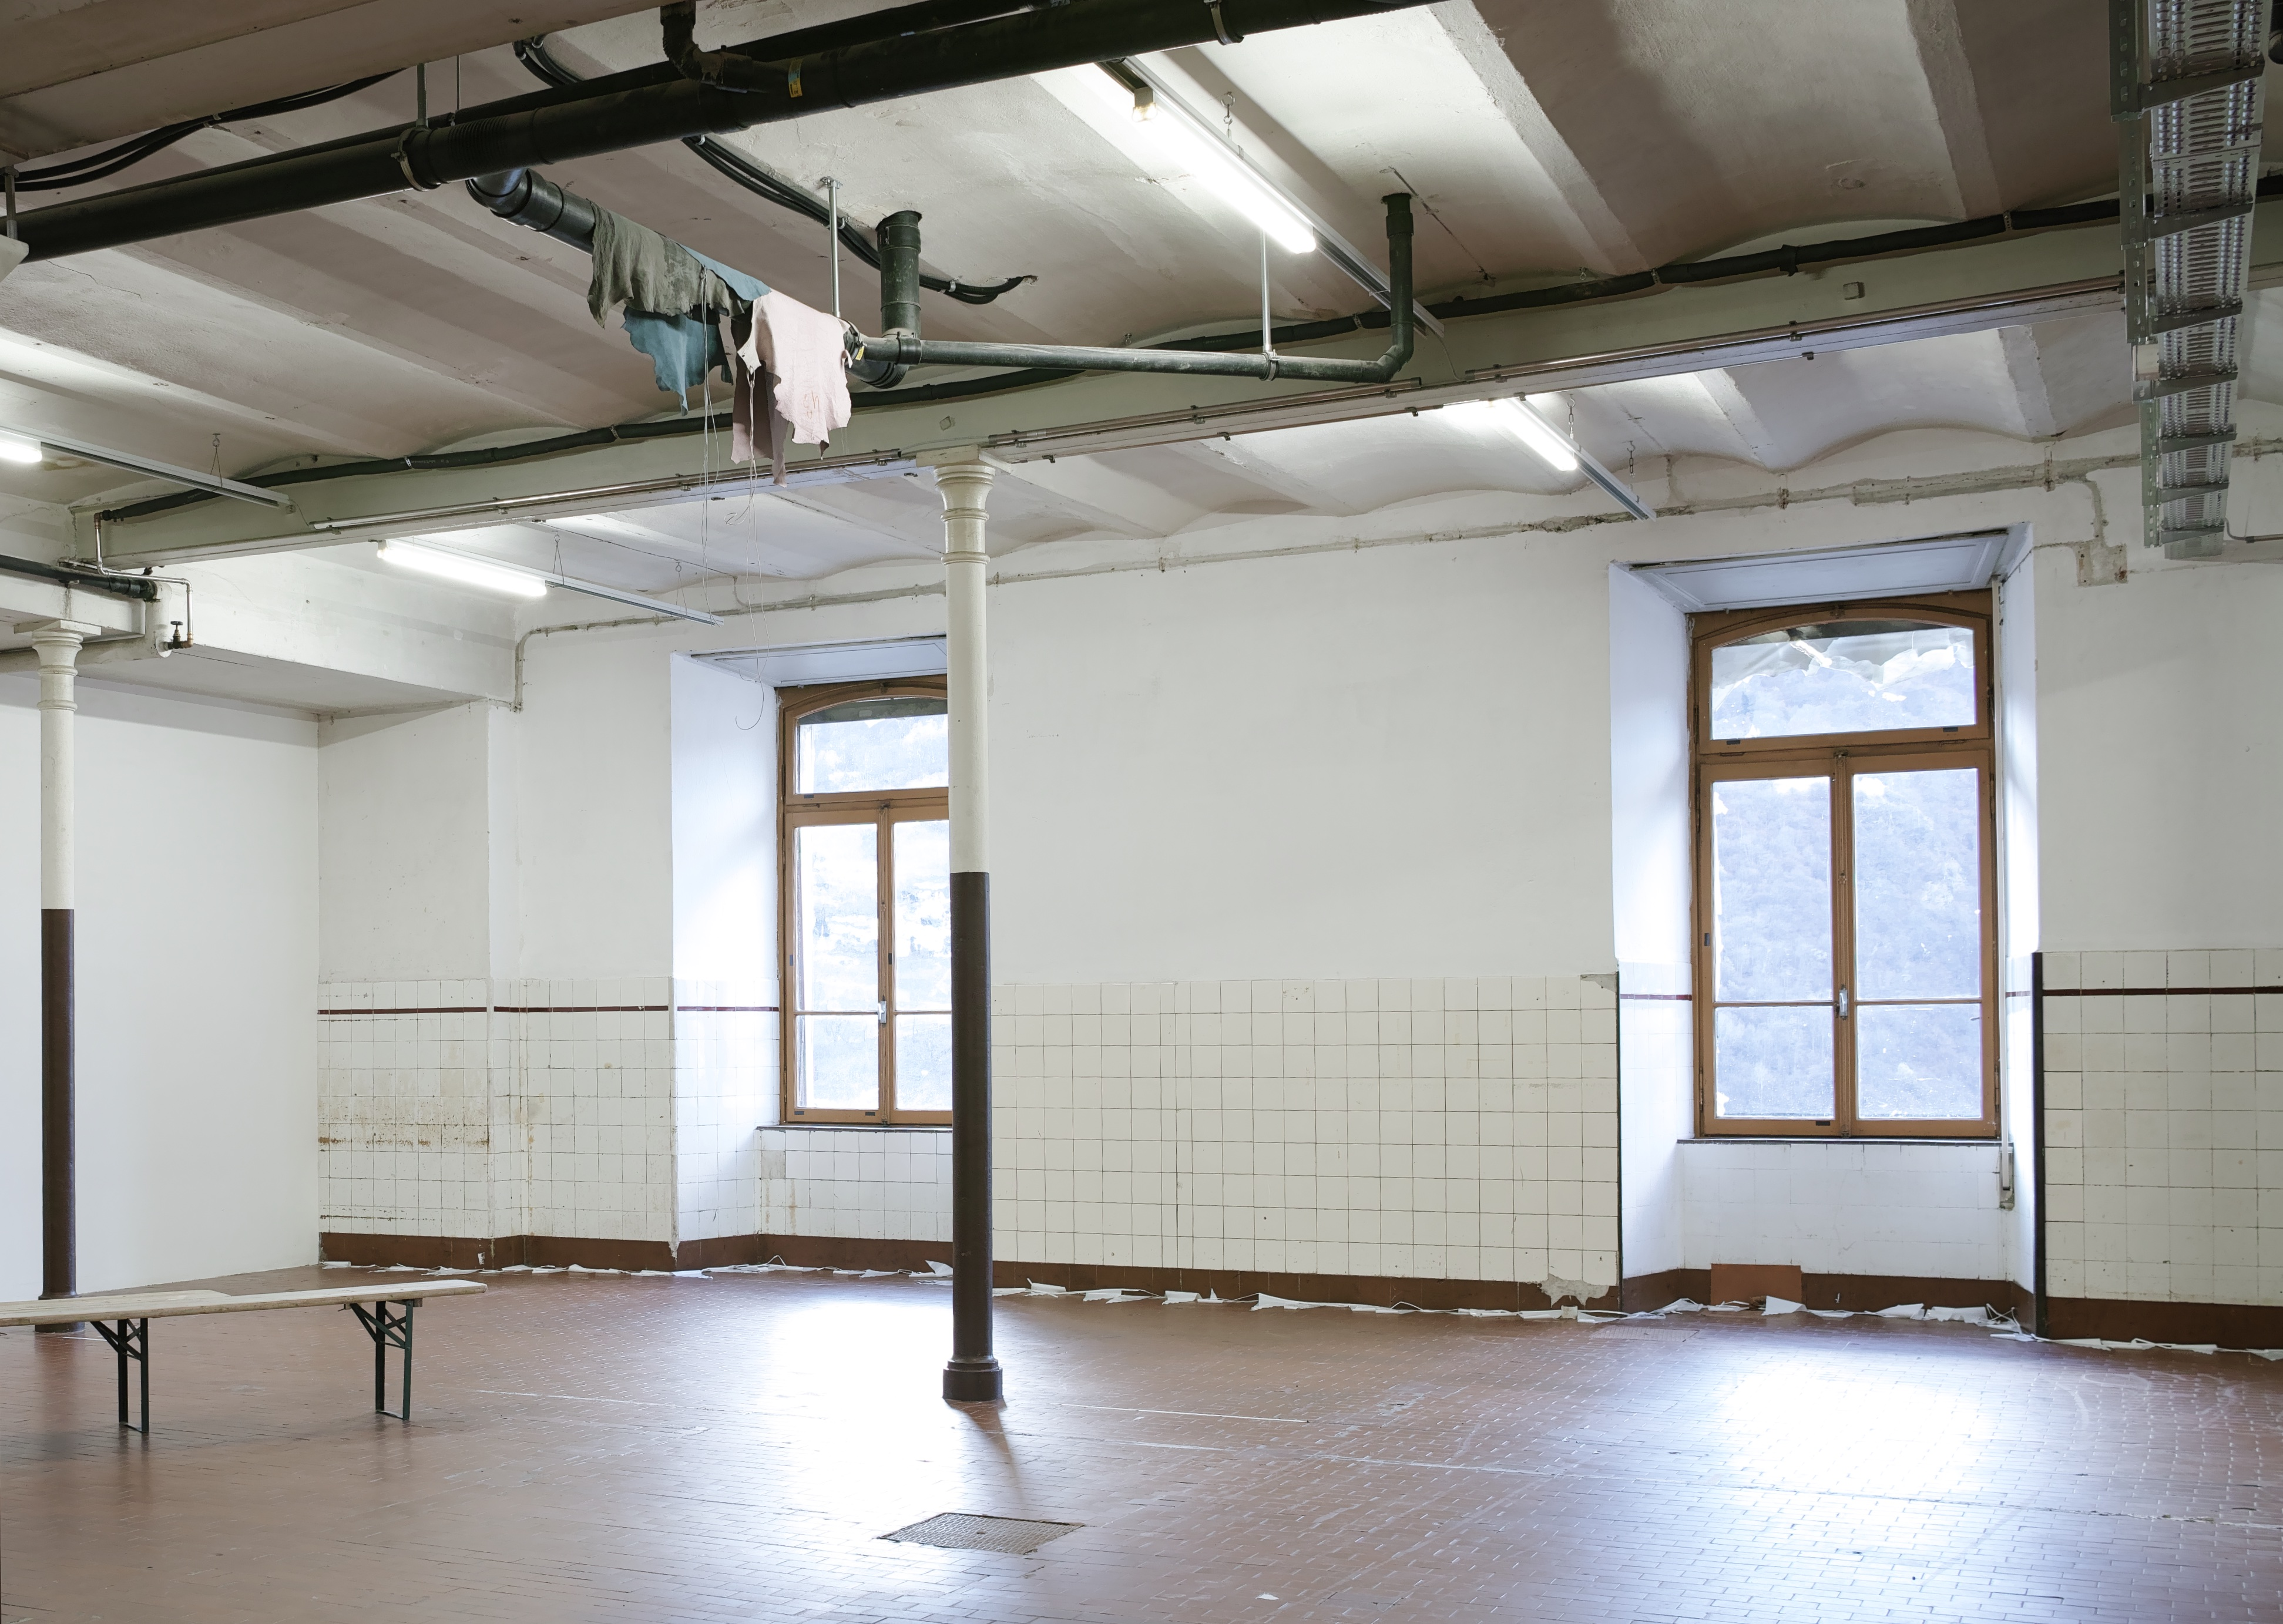 Entanglement, 2017-2018, leather-made pieces (suede), waxed cotton cord, magnets, exhibition view at Chocolate Factory Foundation, Blenio Valley, Switzerland, Walkabout group show 2018